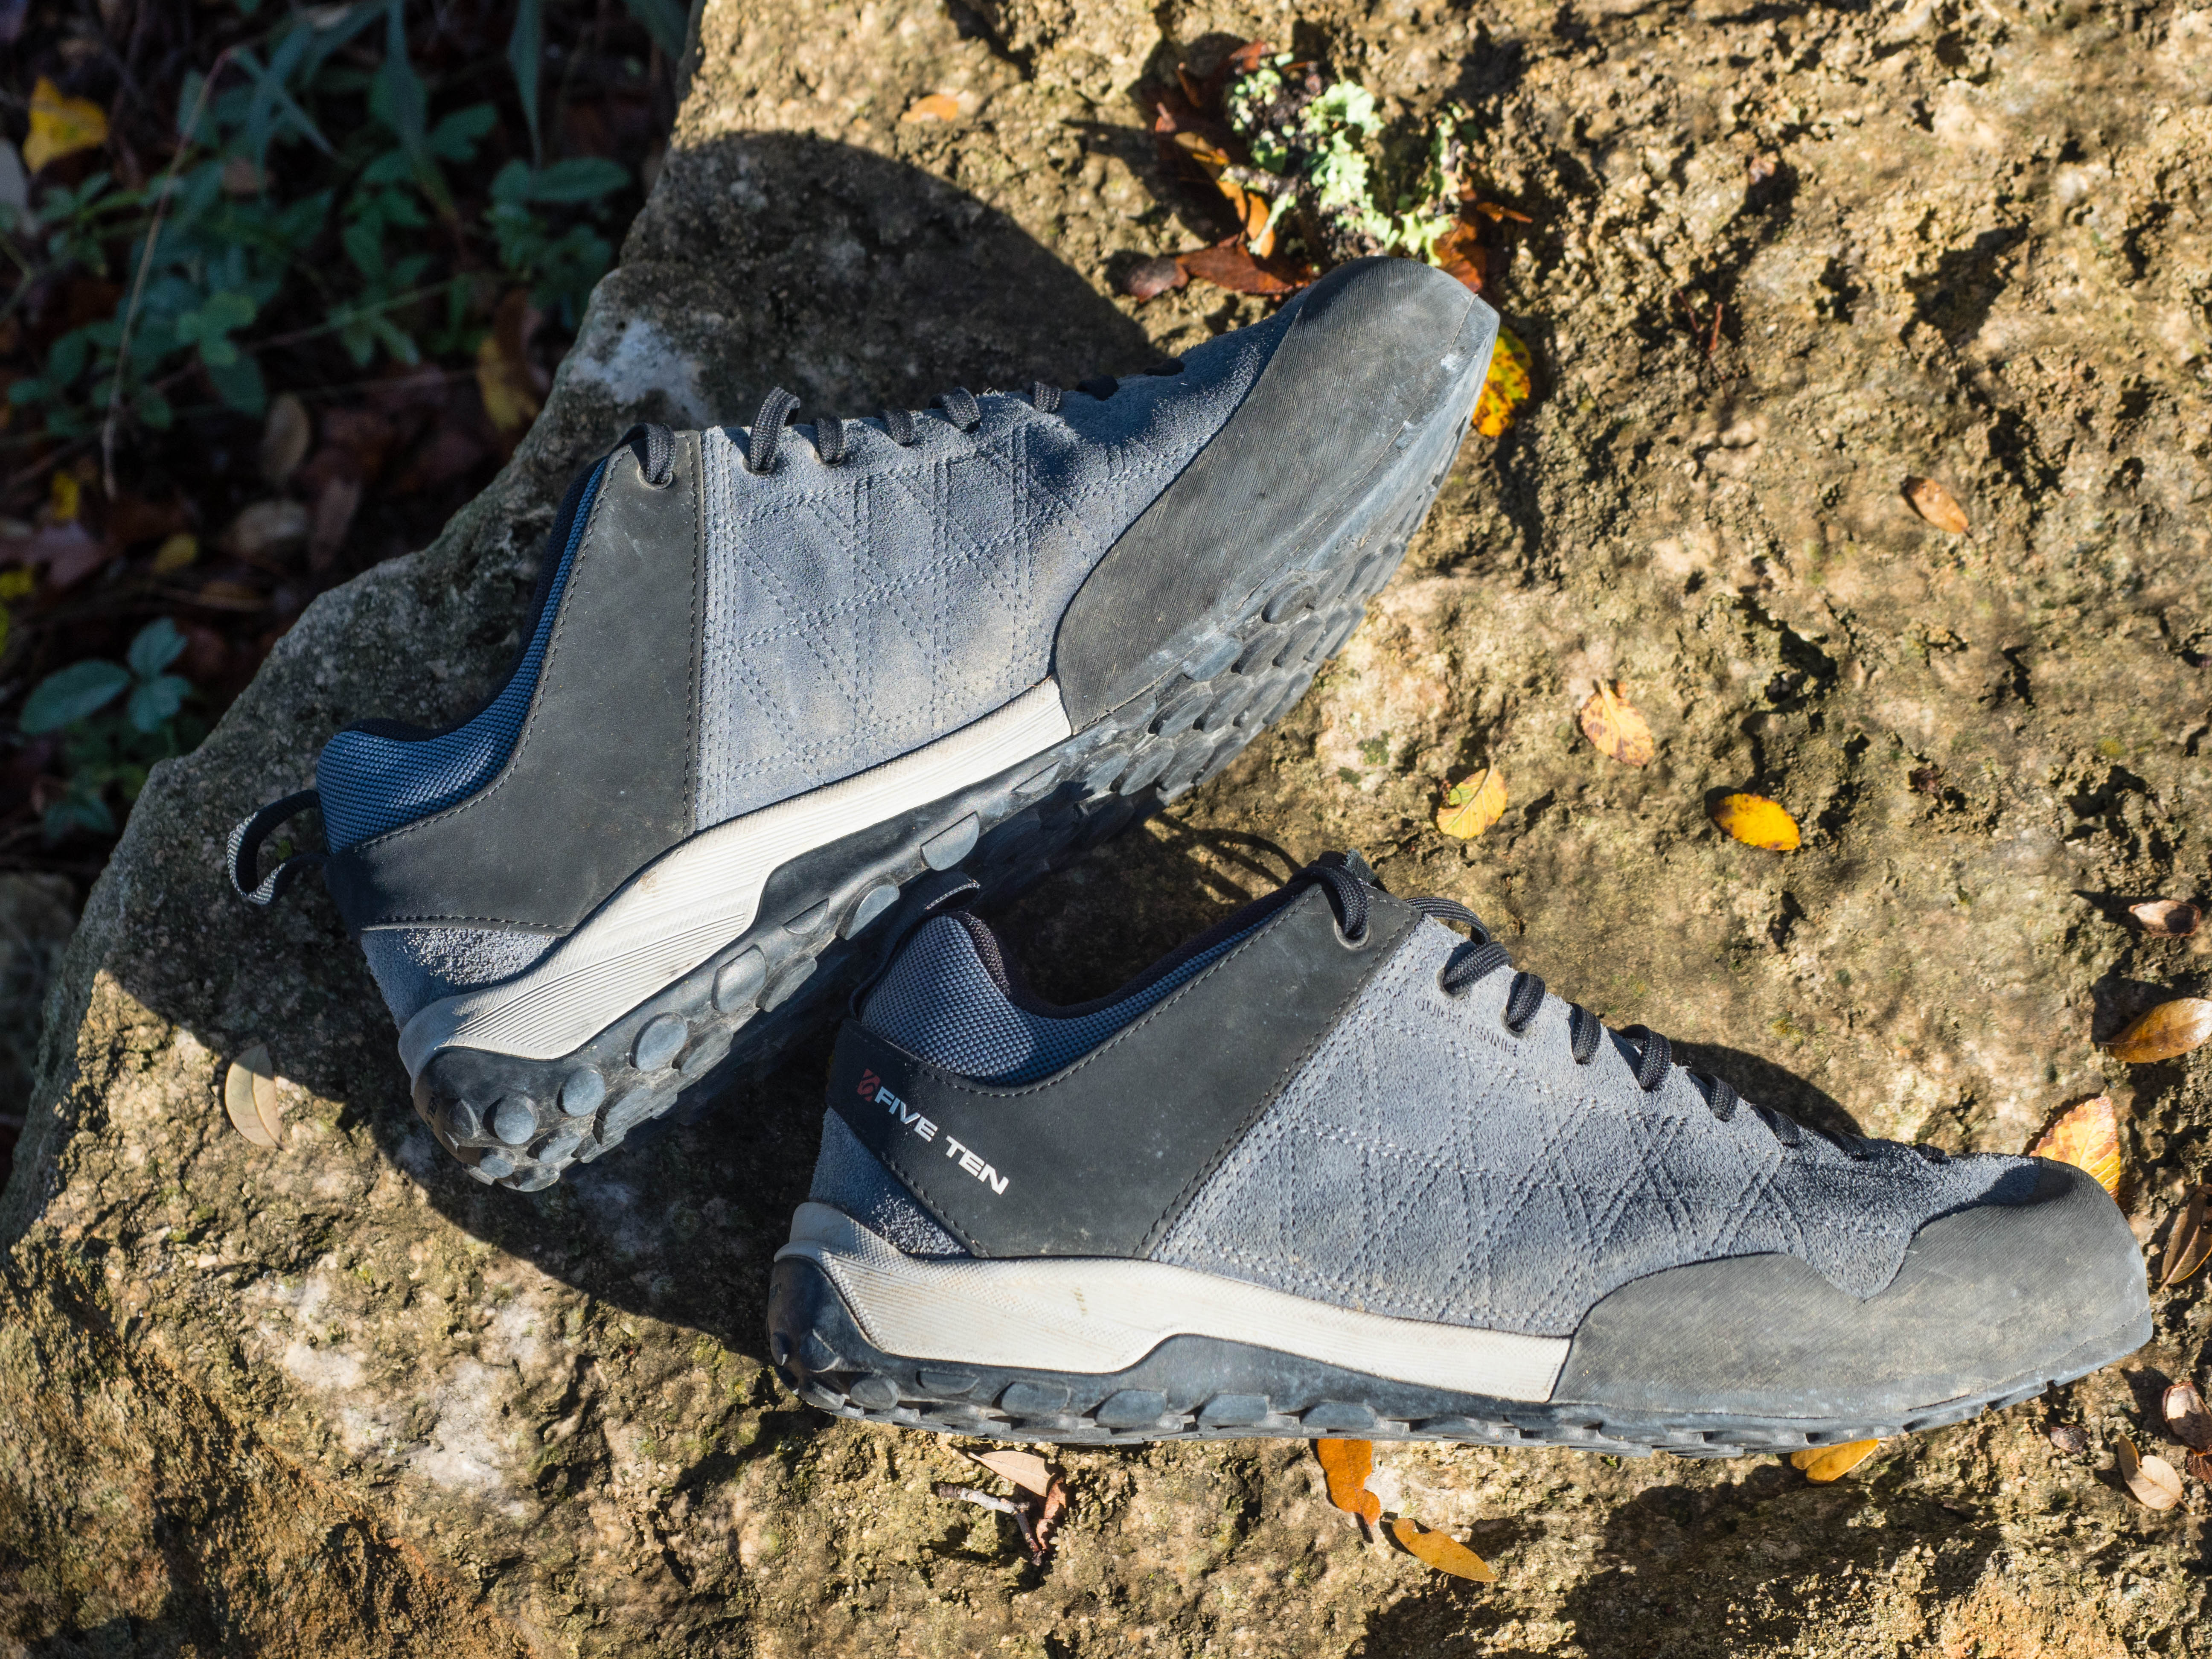 One Shoe To Hike and Climb: Five Ten Guide Tennie Review